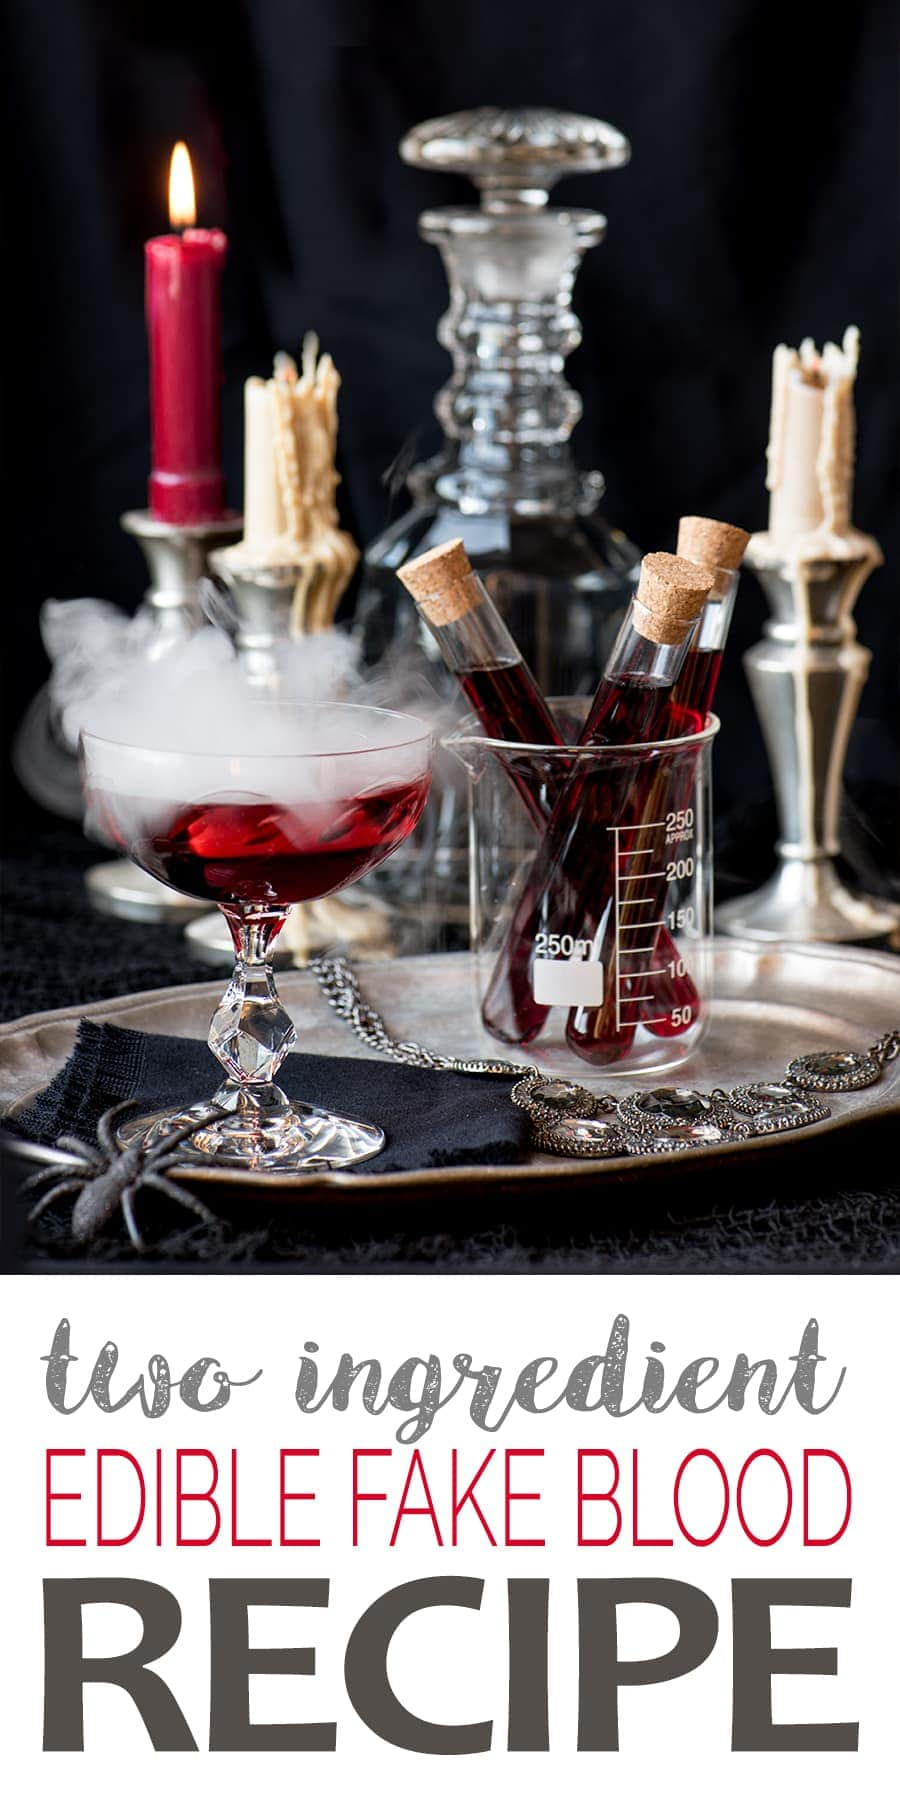 Making edible fake blood is an easy undertaking. This Halloween recipe uses just two ingredients: sugar and juice and tastes fang-tastic! #halloween #fakeblood #allhallowseve #ediblefakeblood #halloweentreats